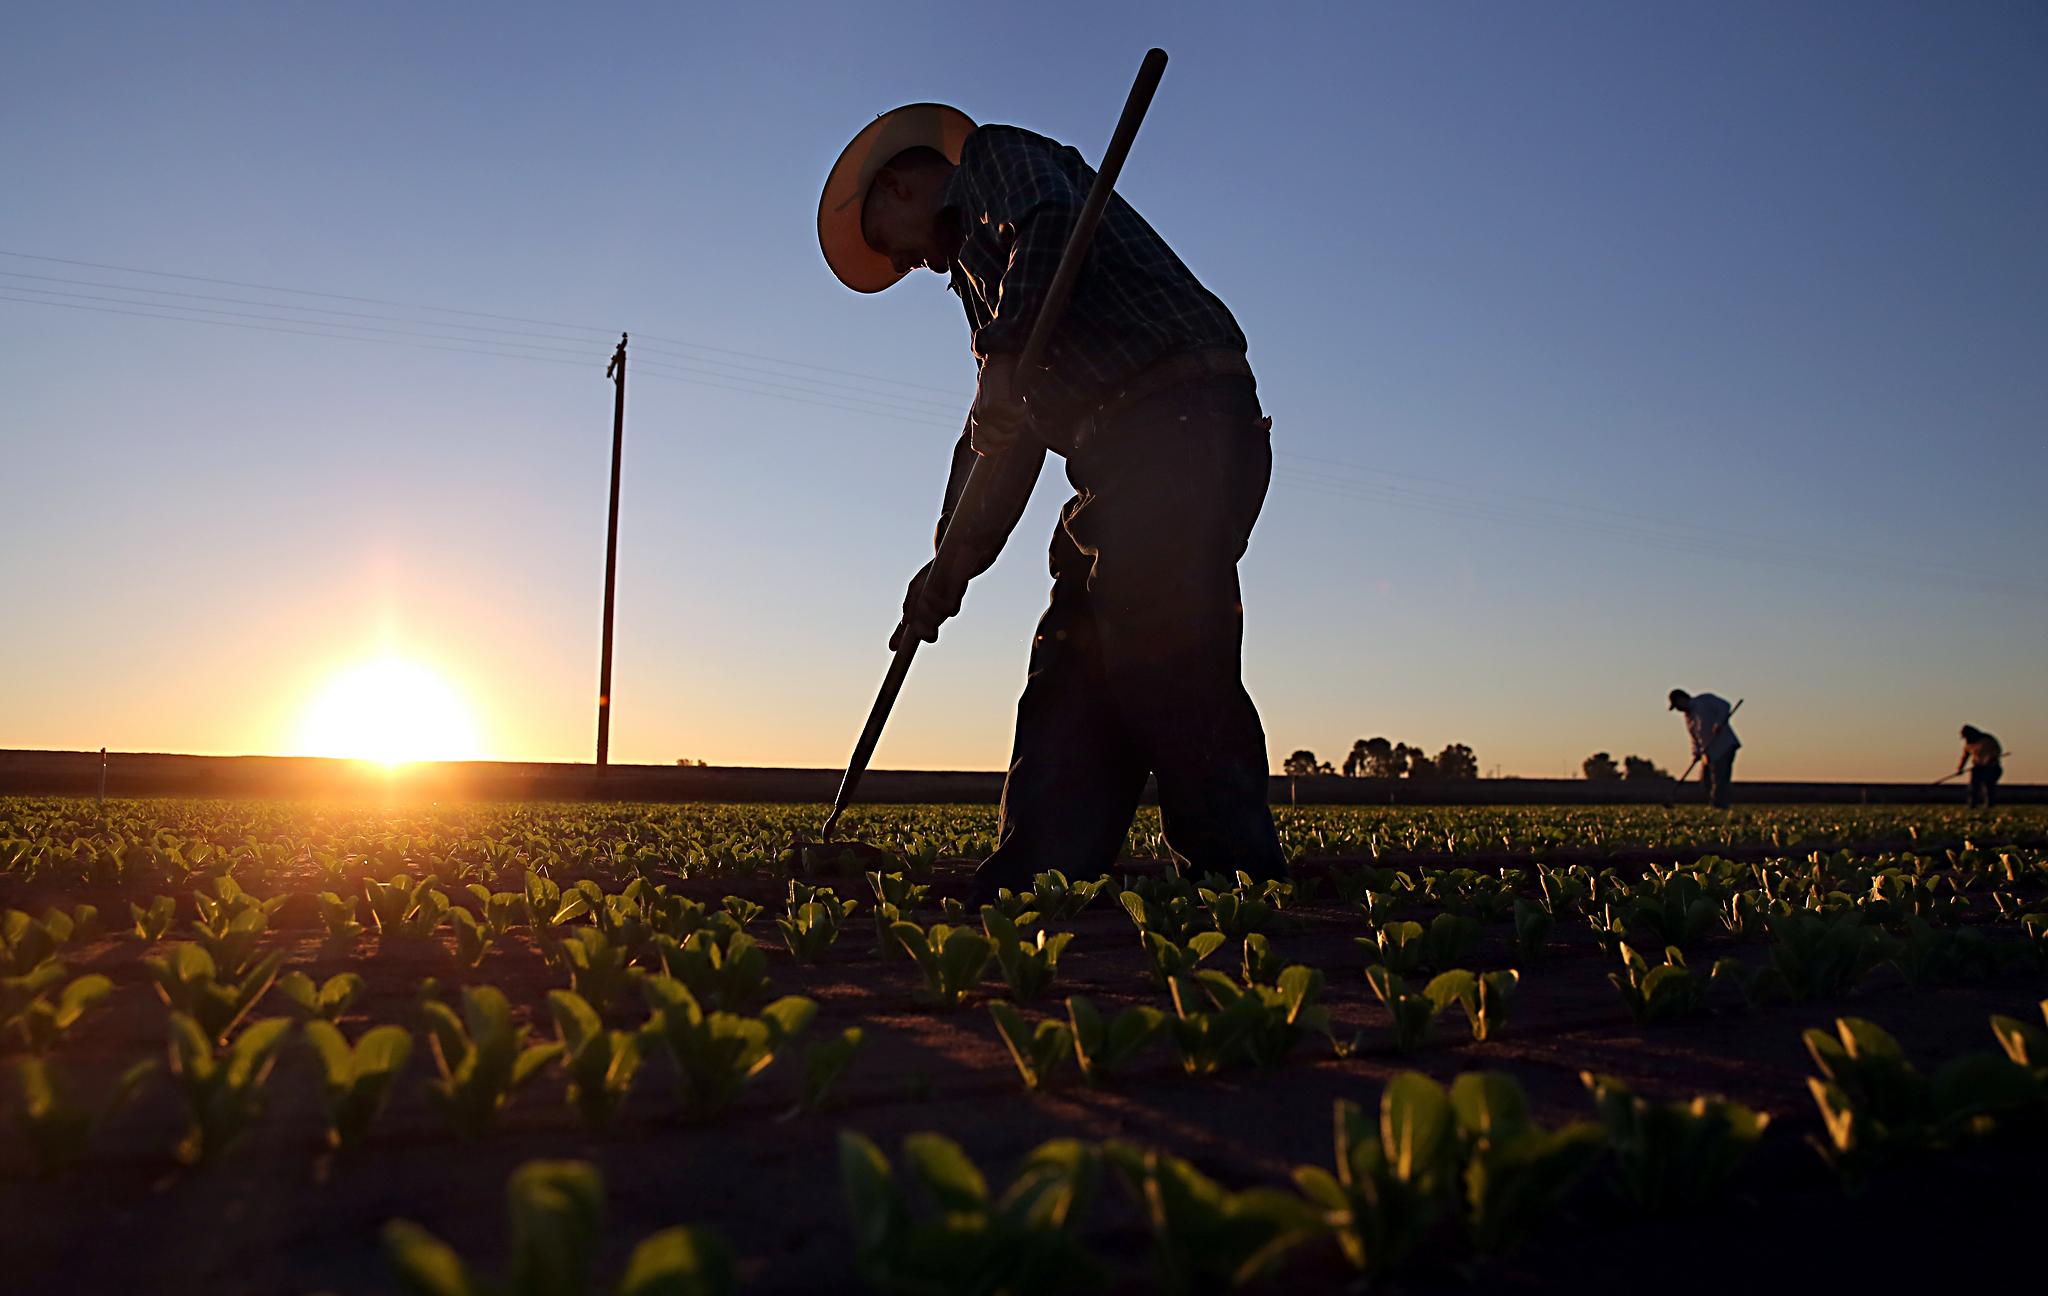 Mexican agricultural workers cultivate romaine lettuce on a farm in Holtville, California, USA. Thousands of Mexican workers cross the border legally each night from Mexicali, Mexico into Calexico, California, where they pick up work as agricultural day labourers at rates of pay considered too low by local US residents.